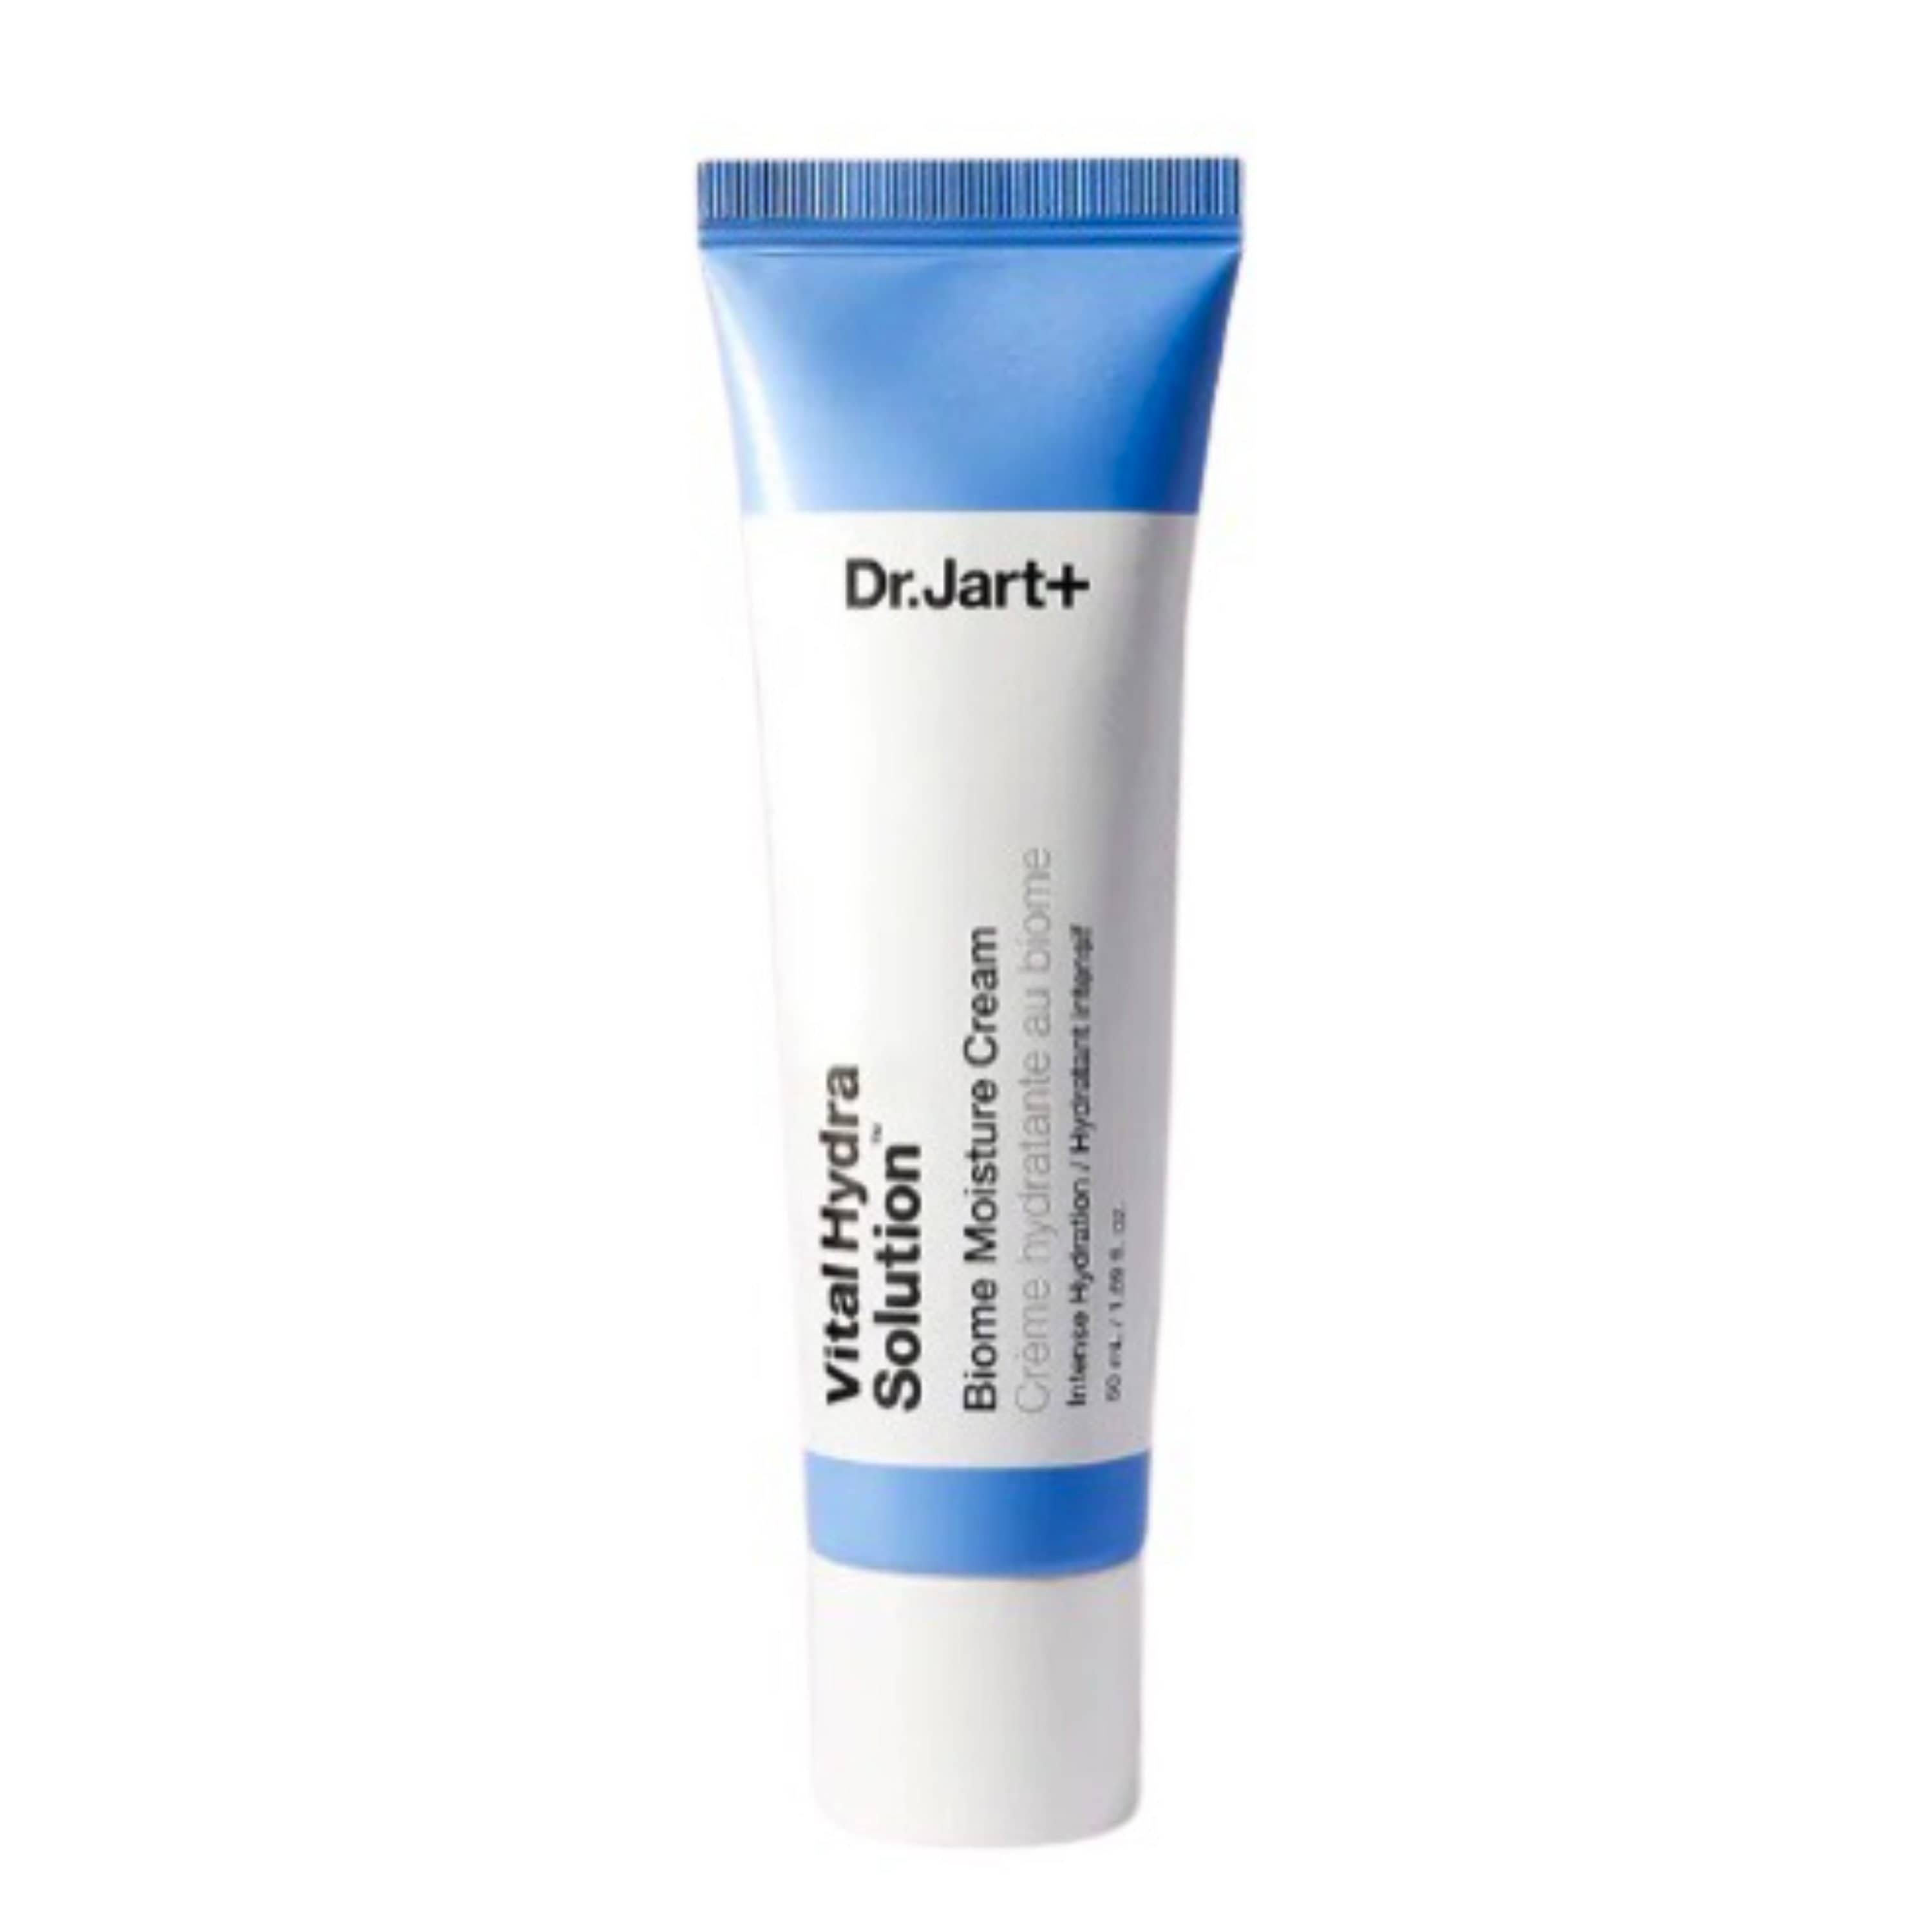 Dr. Jart+ Vital Hydra Solution Biome Moisture Cream 50ml - Ginger Cosmetics